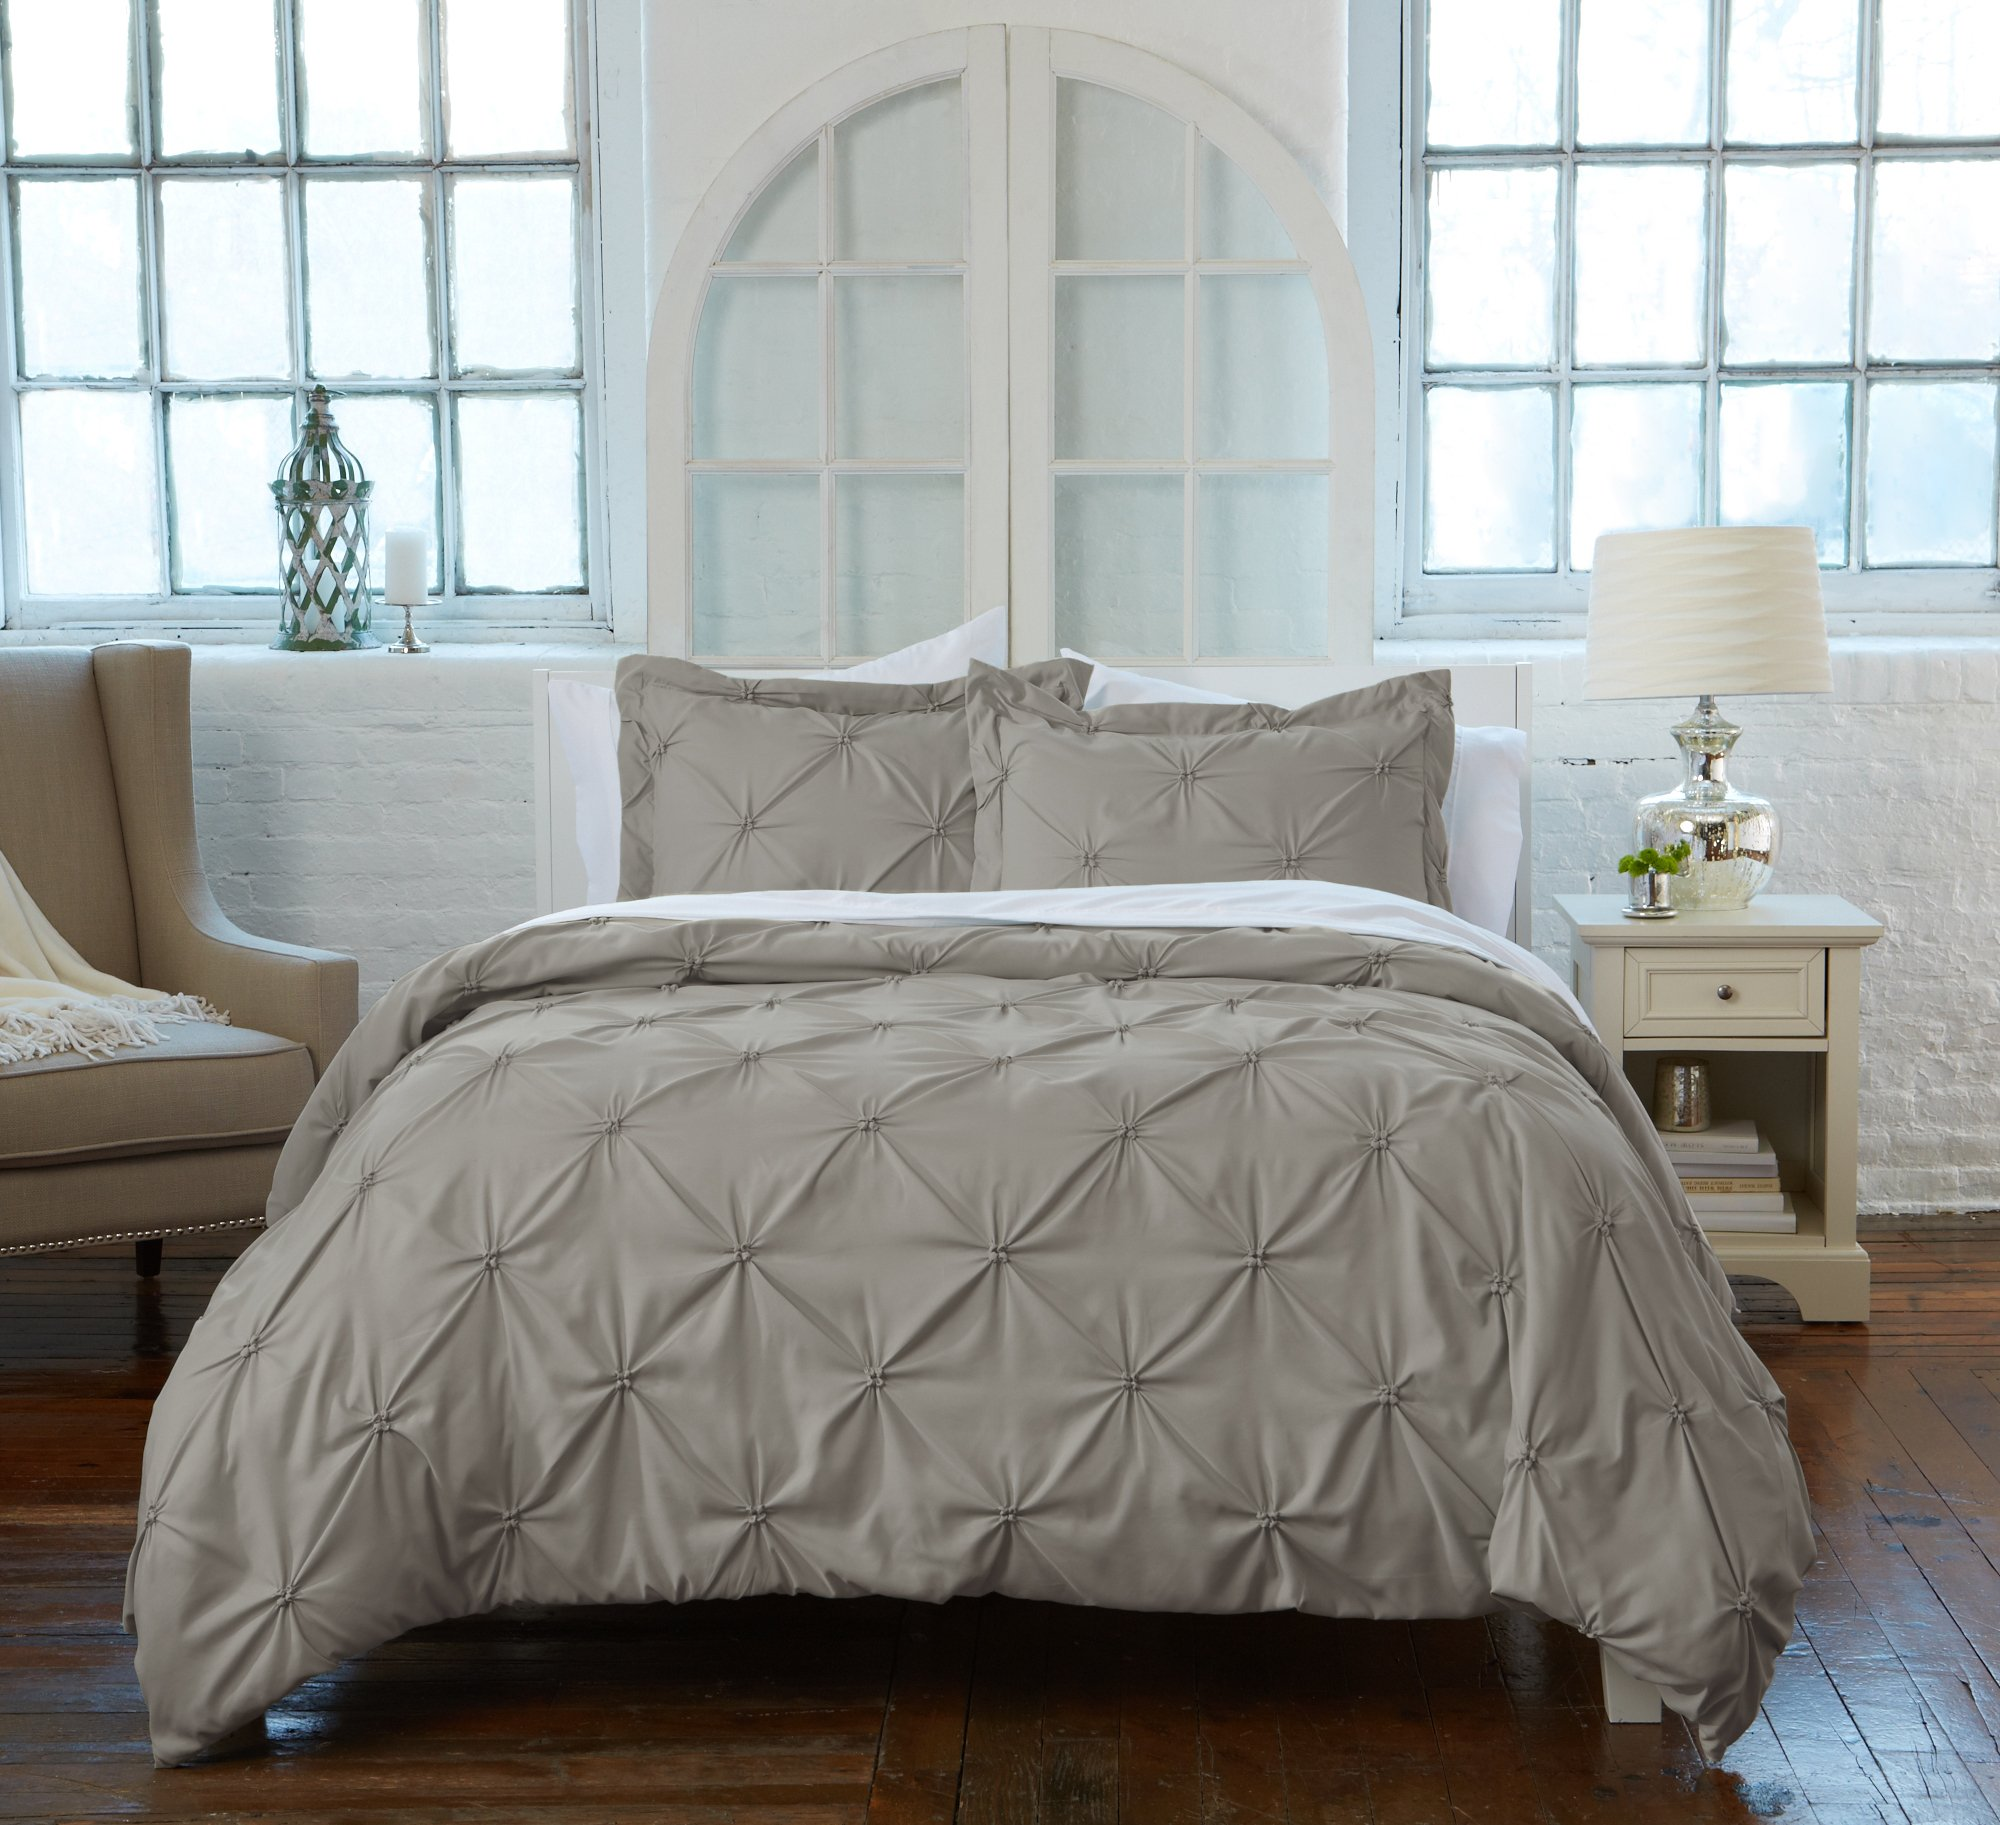 Great Bay Home Signature Pinch Pleated Pintuck Duvet Cover with Button Closure. Luxuriously Soft 100% Brushed Microfiber with Textured Pintuck Pleats and Corner Ties. By (Full/Queen, Stone Grey)